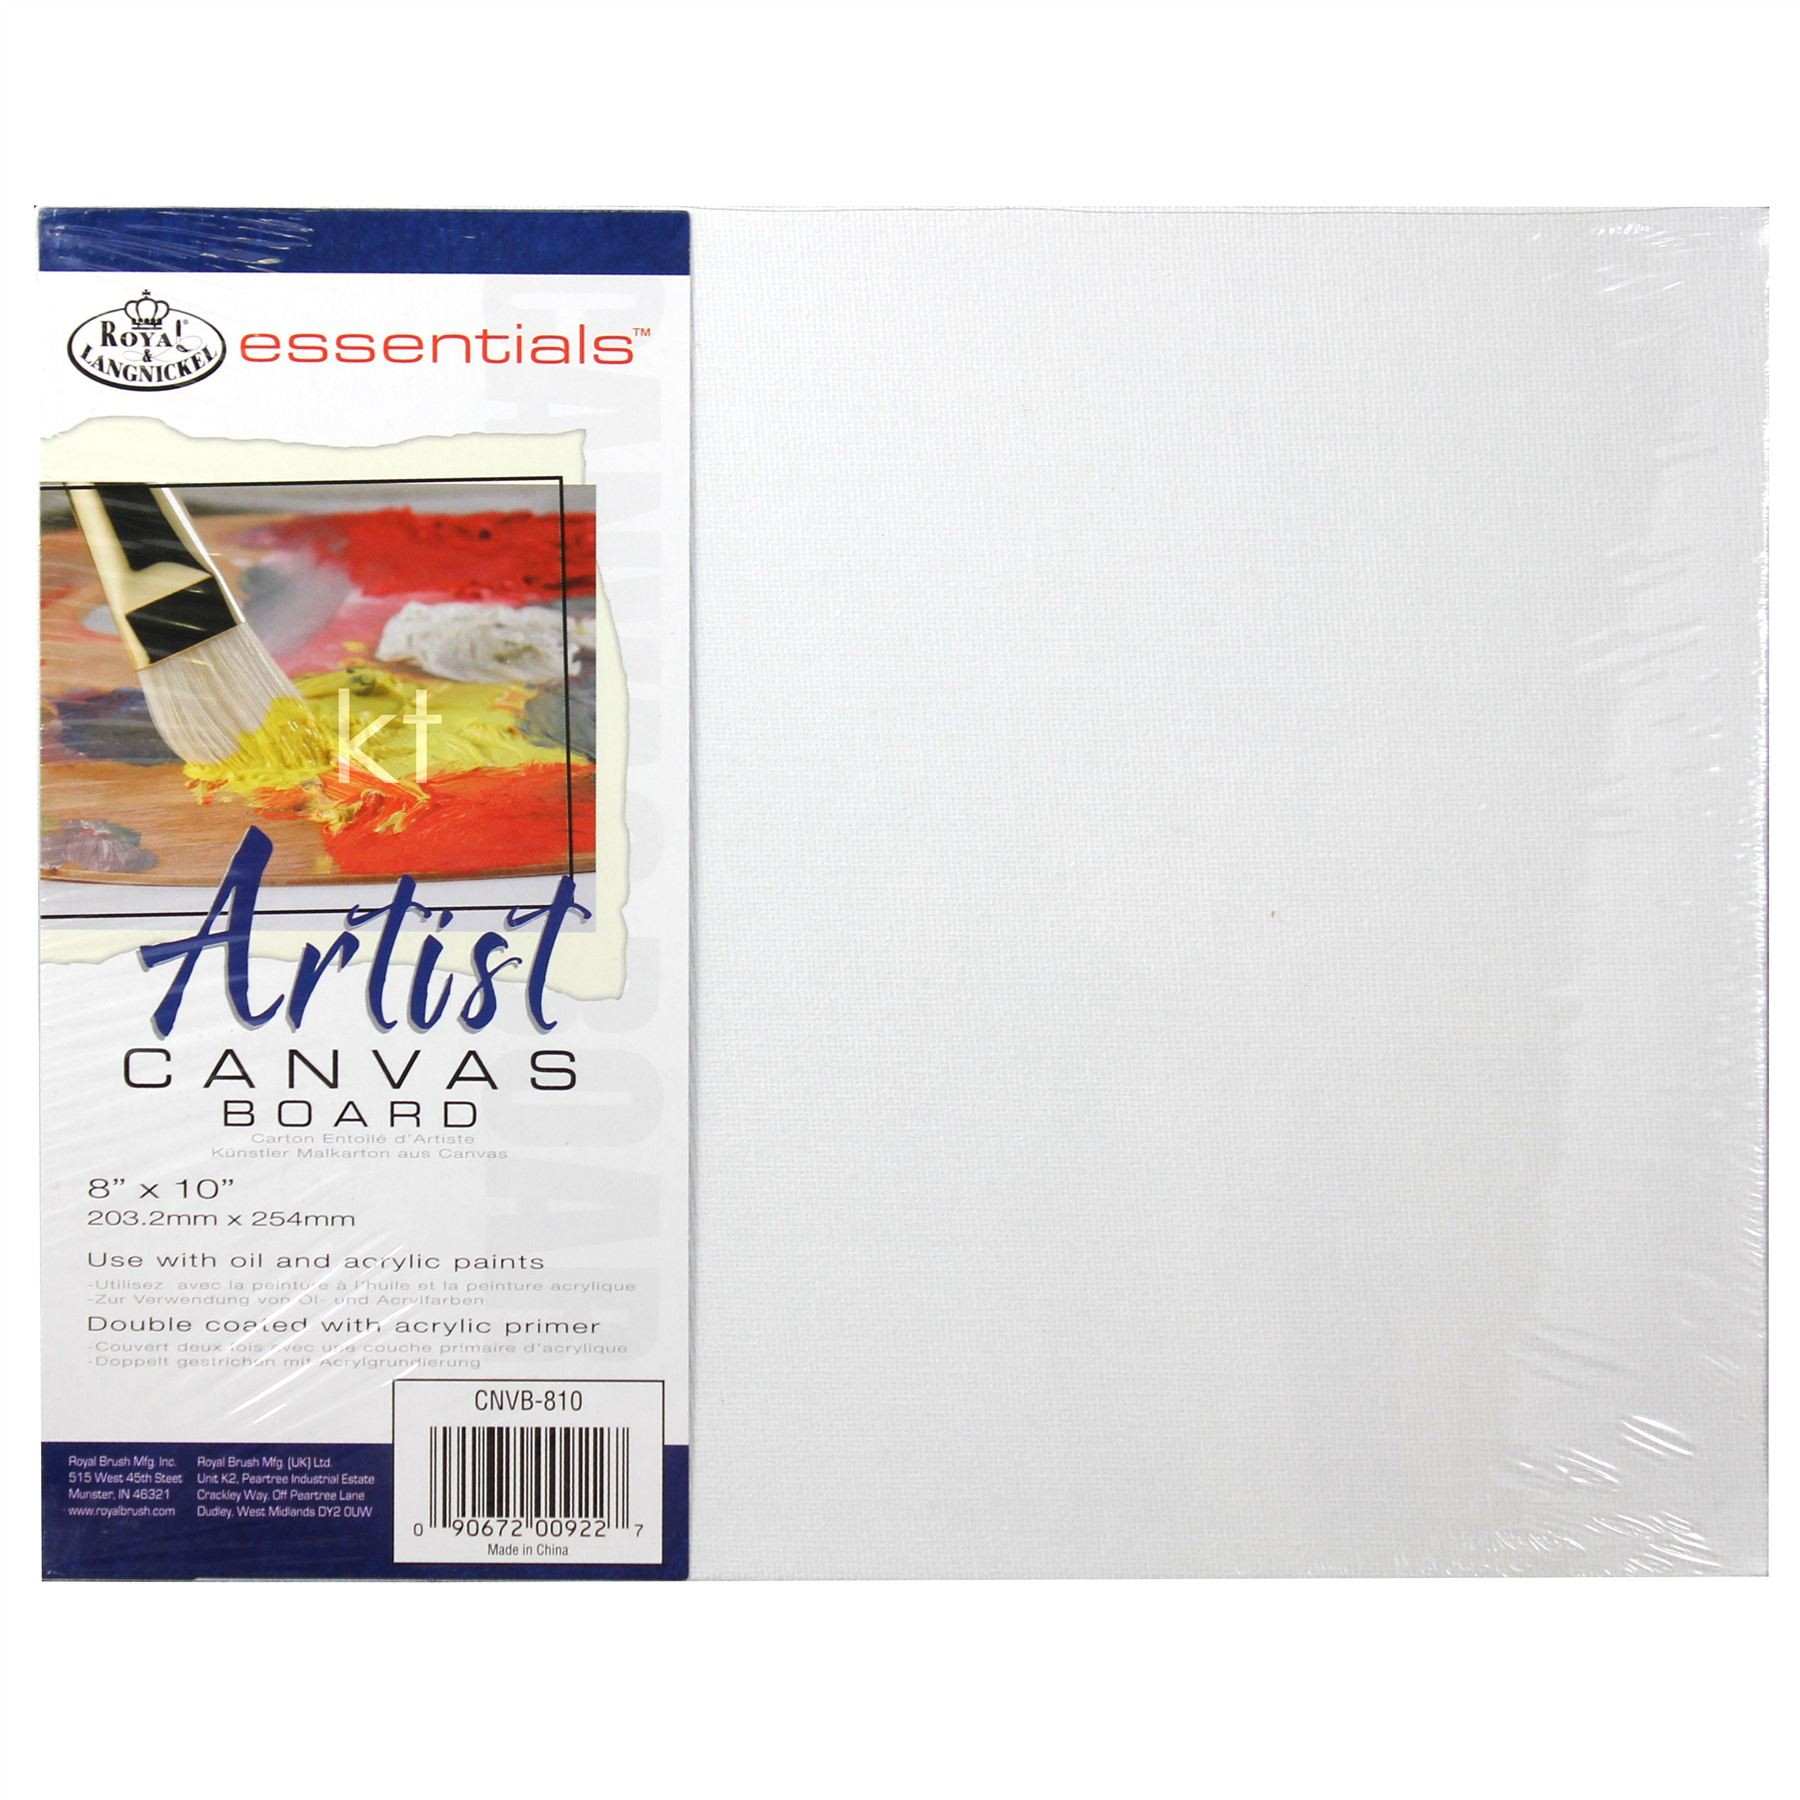 "Canvas board 8""x10"" from Royal and Langnickel"